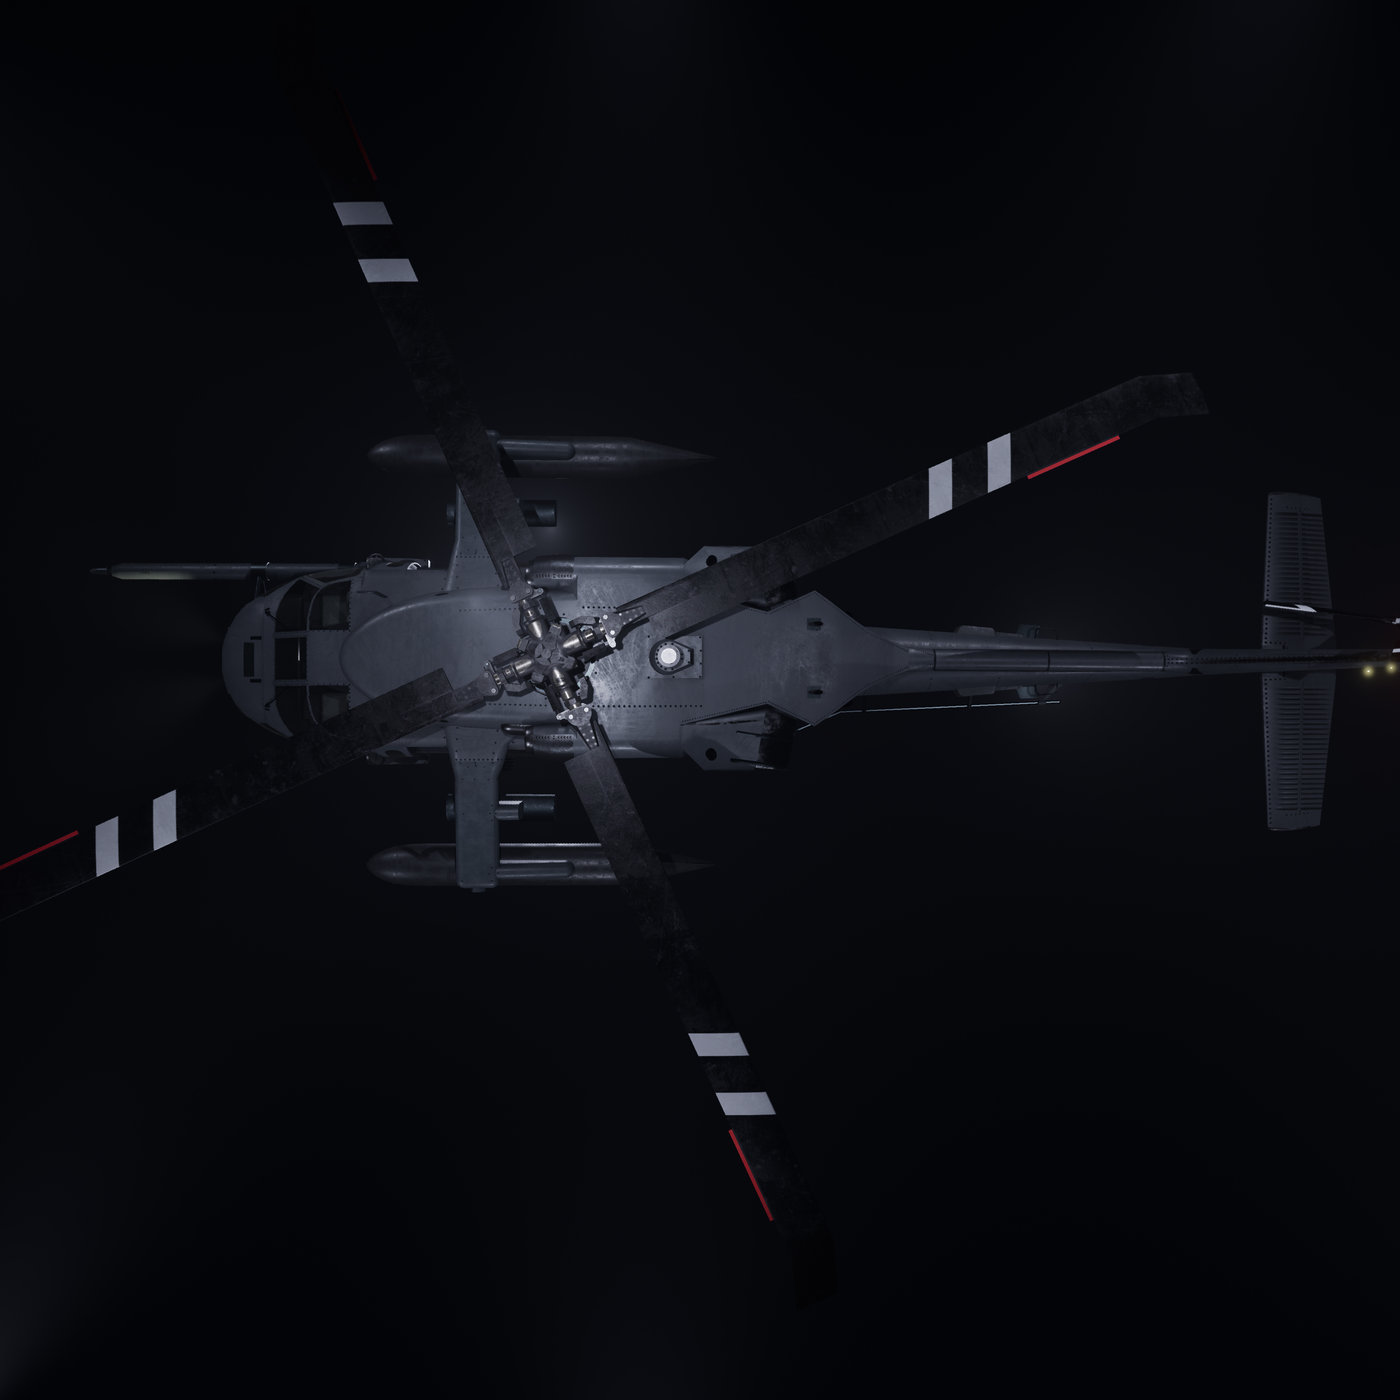 Helicopter - Asset for Games - CMV Props